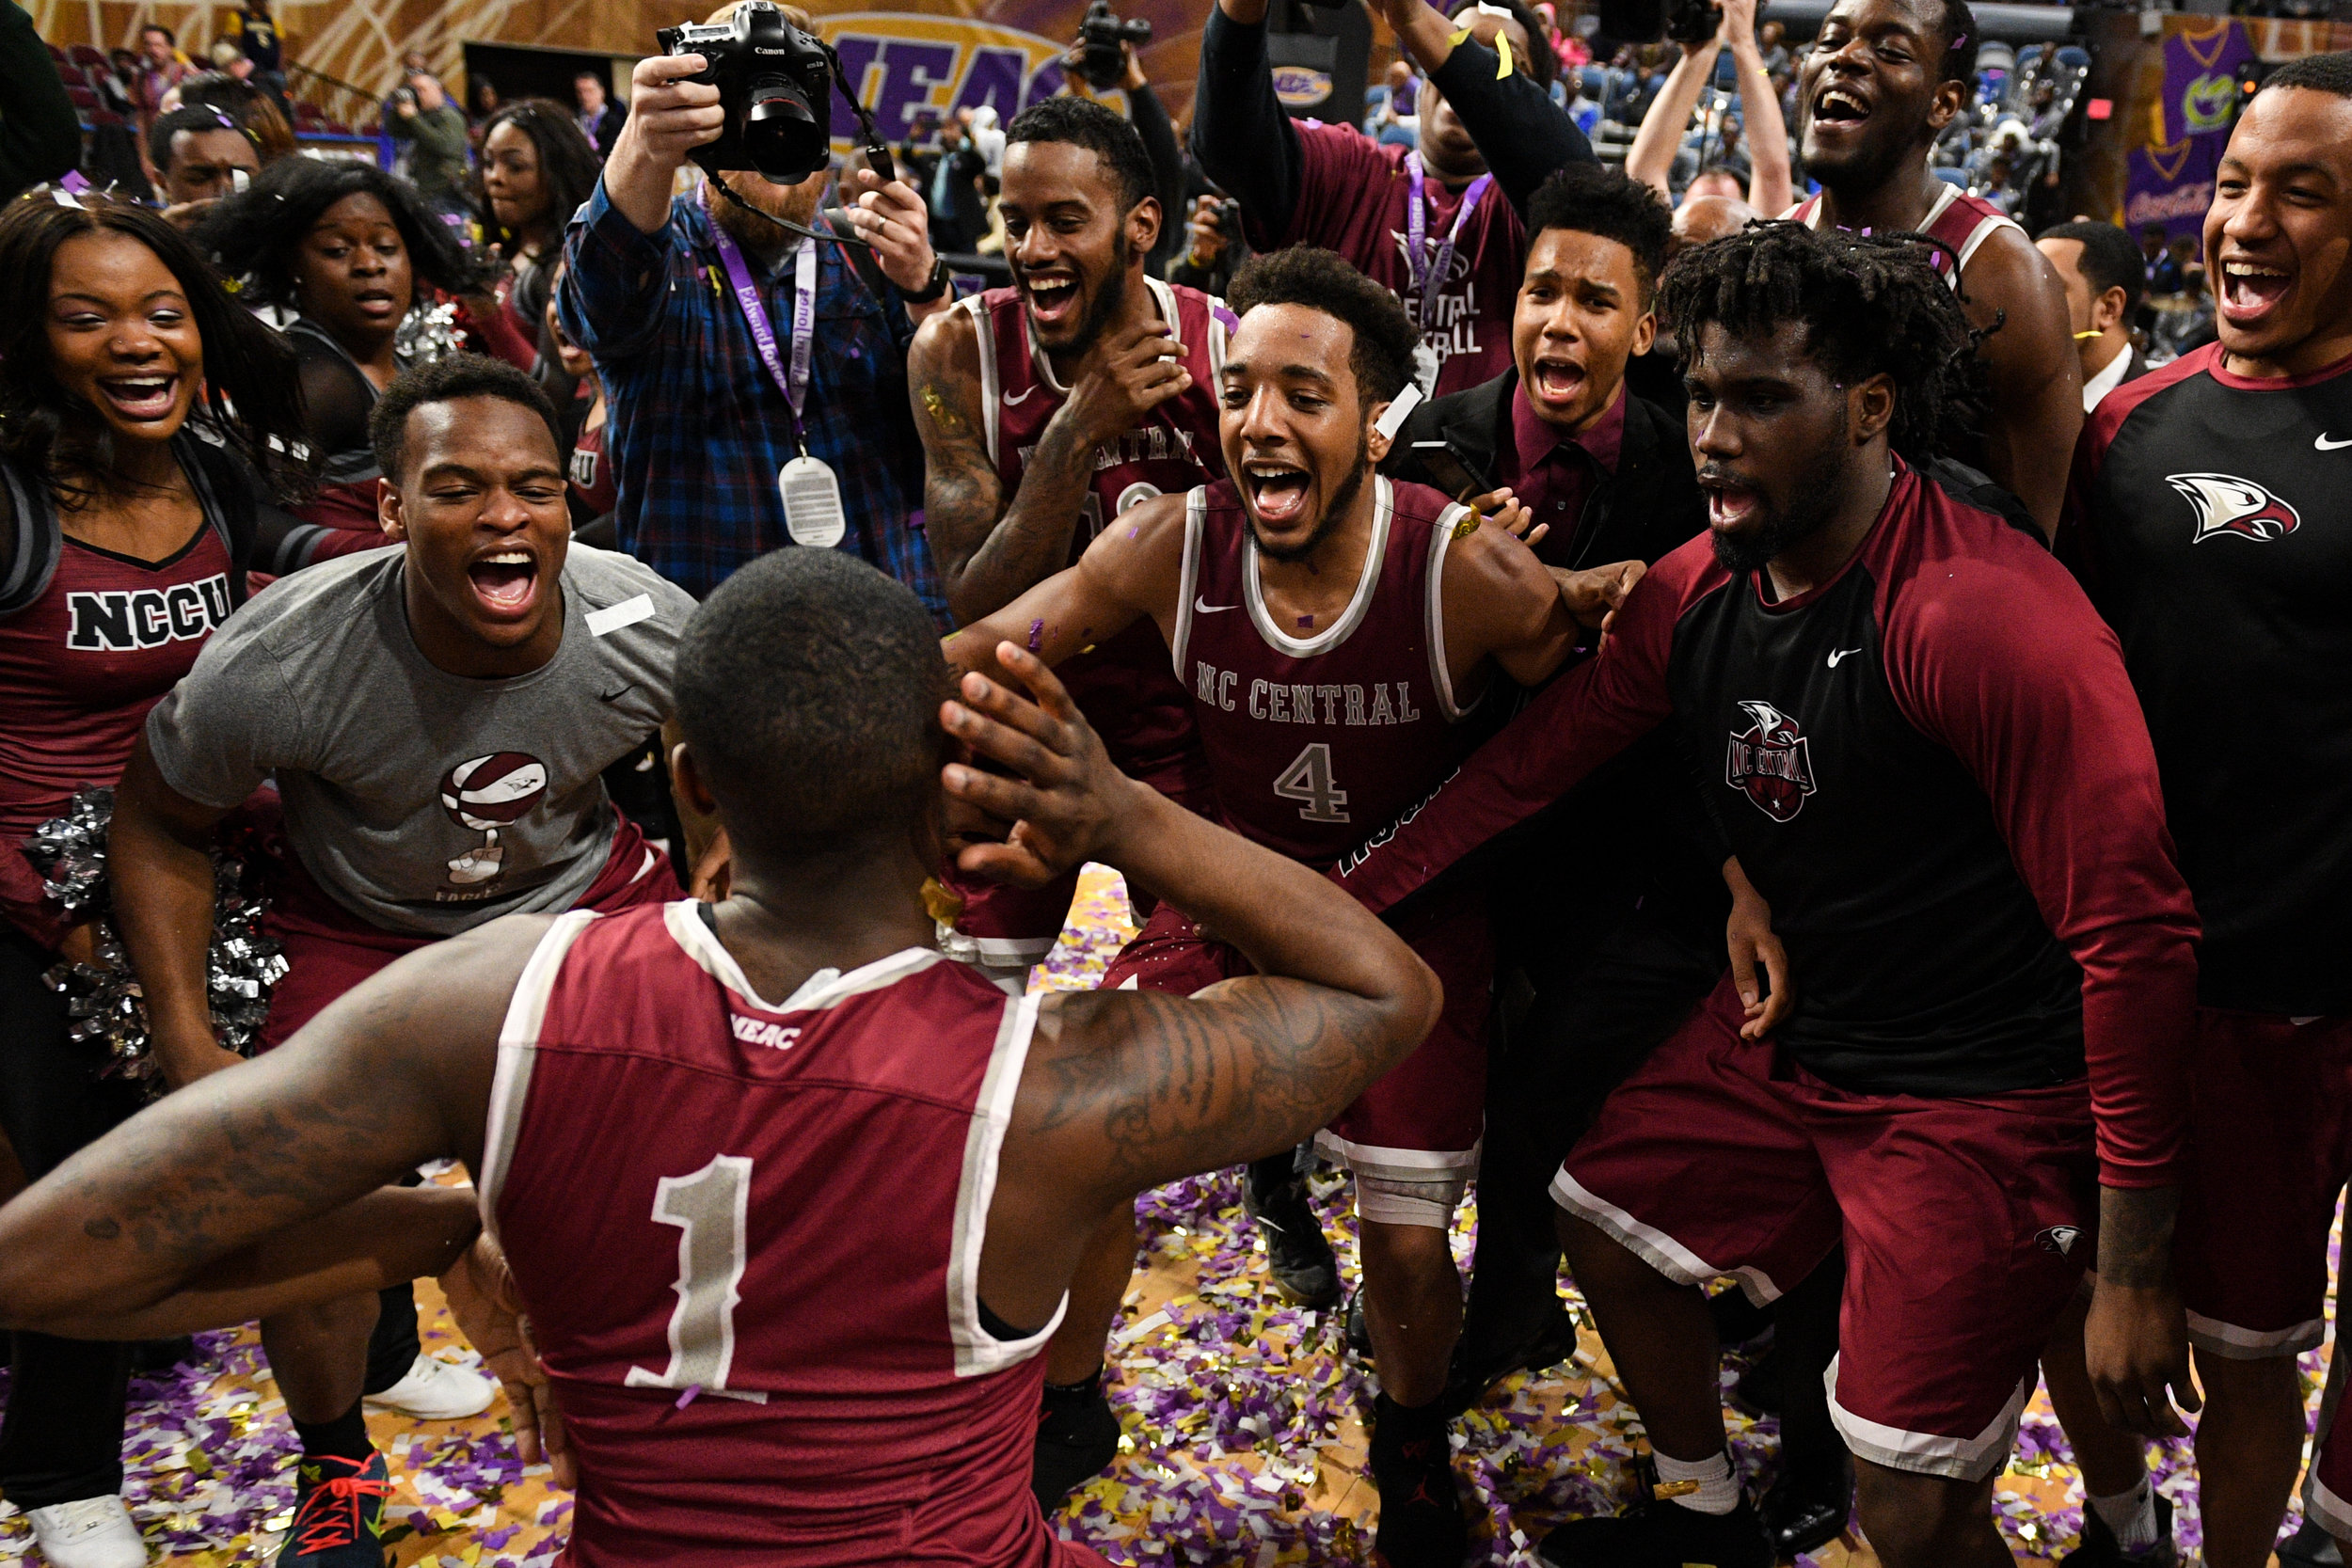 North Carolina Central Hampton Basketball